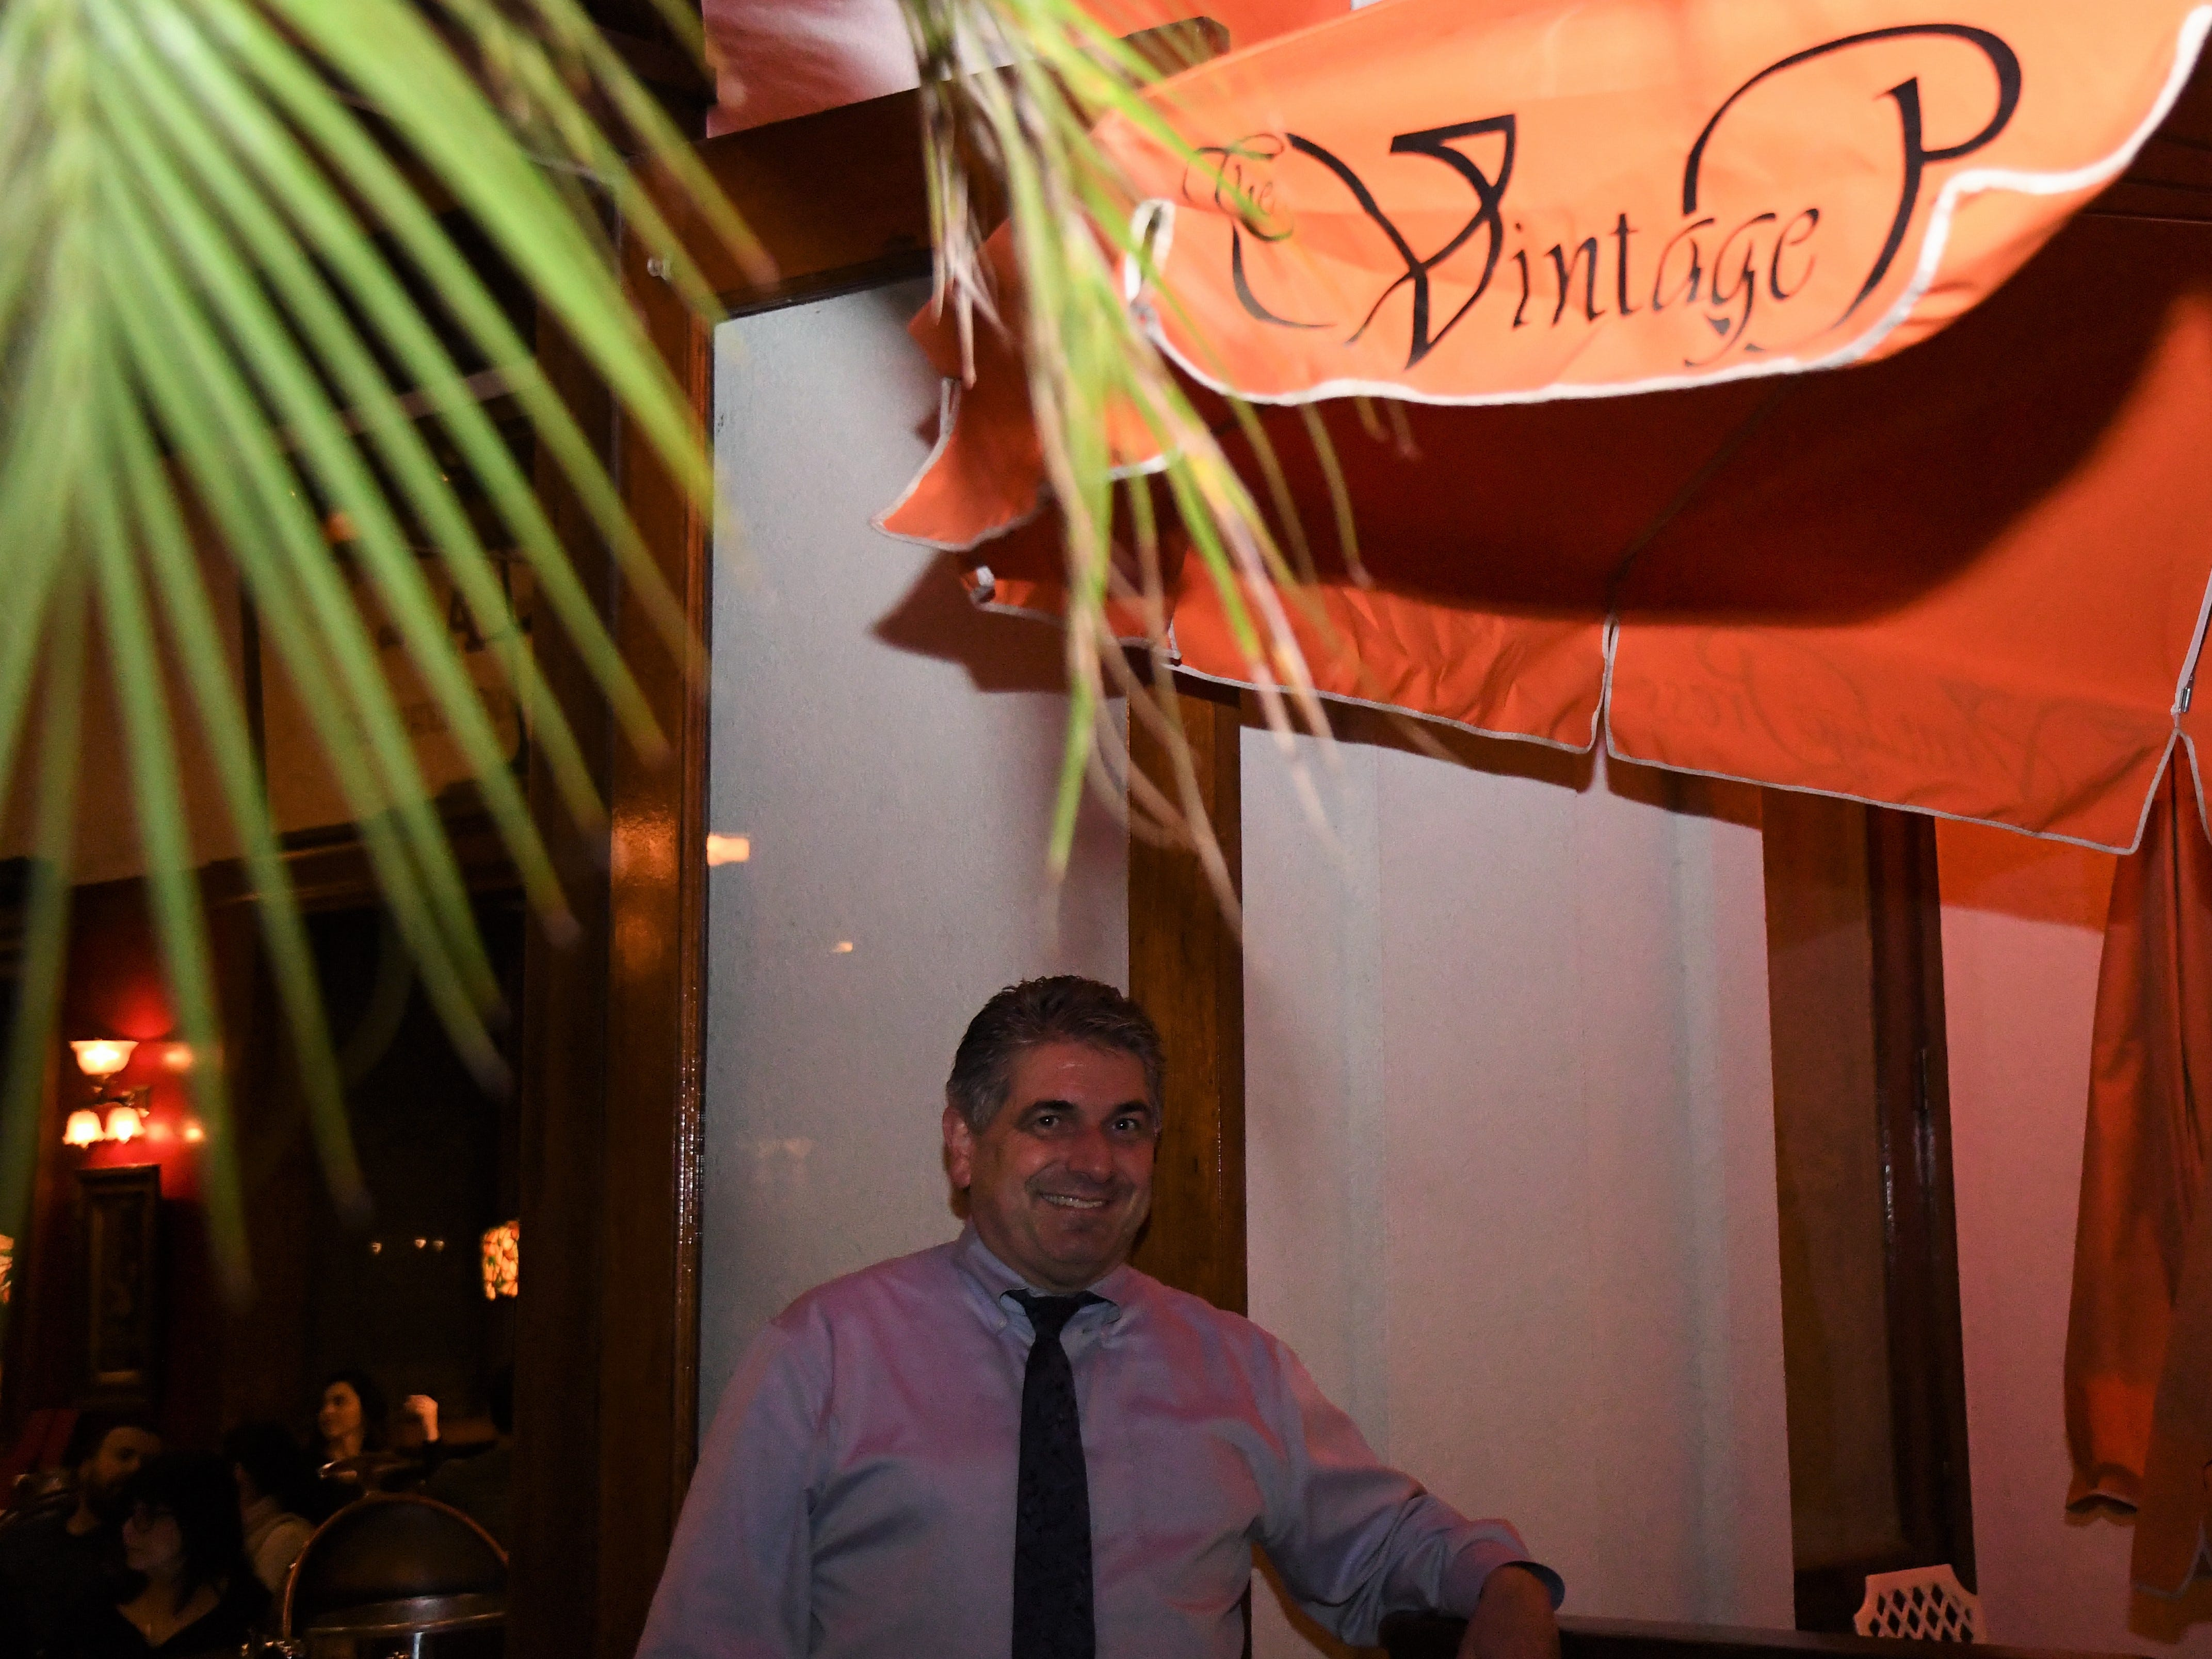 Vintage Press owner David Vartanian celebrates 25 years with Taste of Downtown.